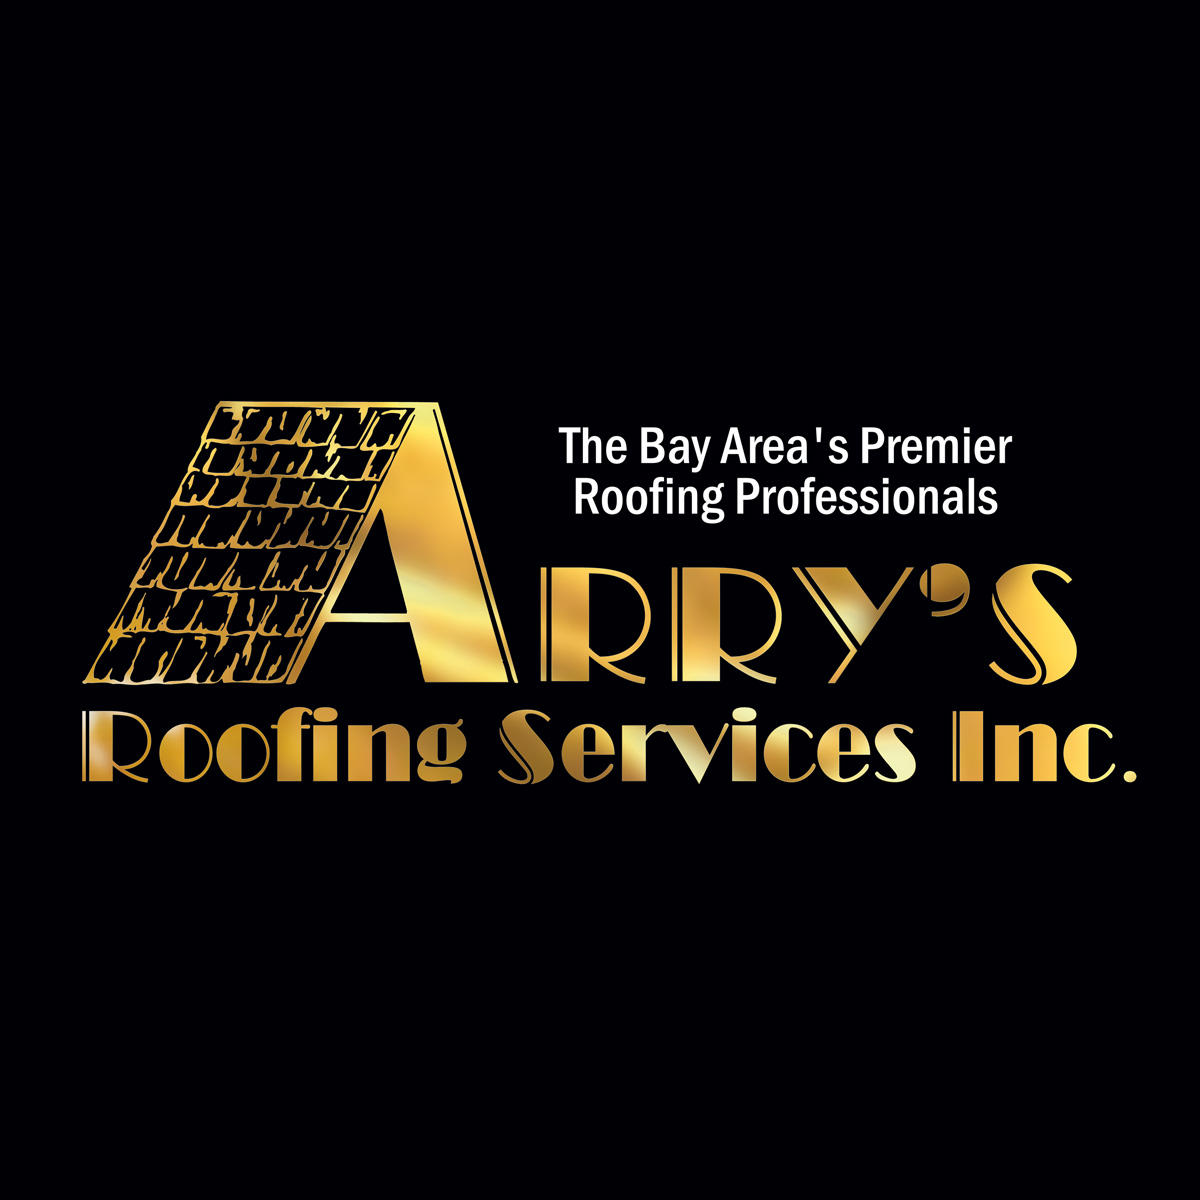 Arry's Roofing Services, Inc.